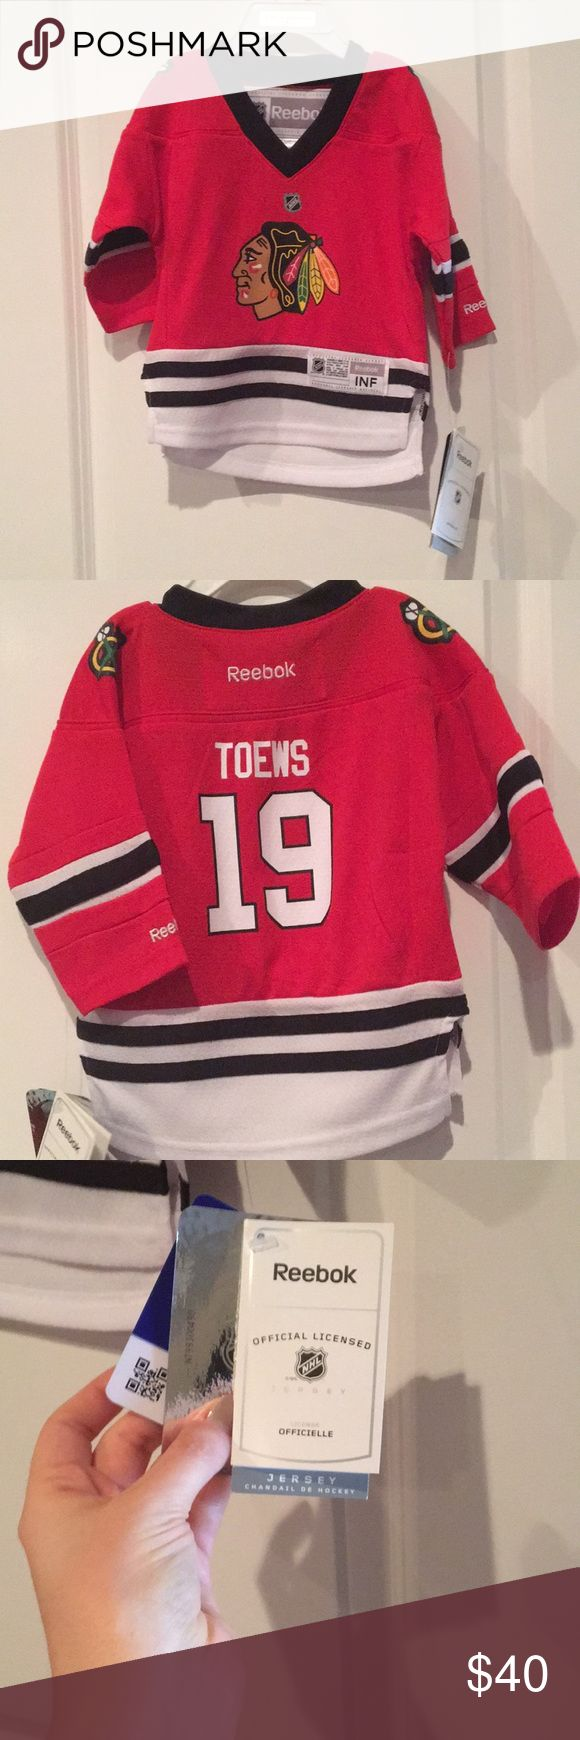 Blackhawks jersey NWT NWT Blackhawks Jersey. 18 months OFFERS WELCOMED Shirts & Tops